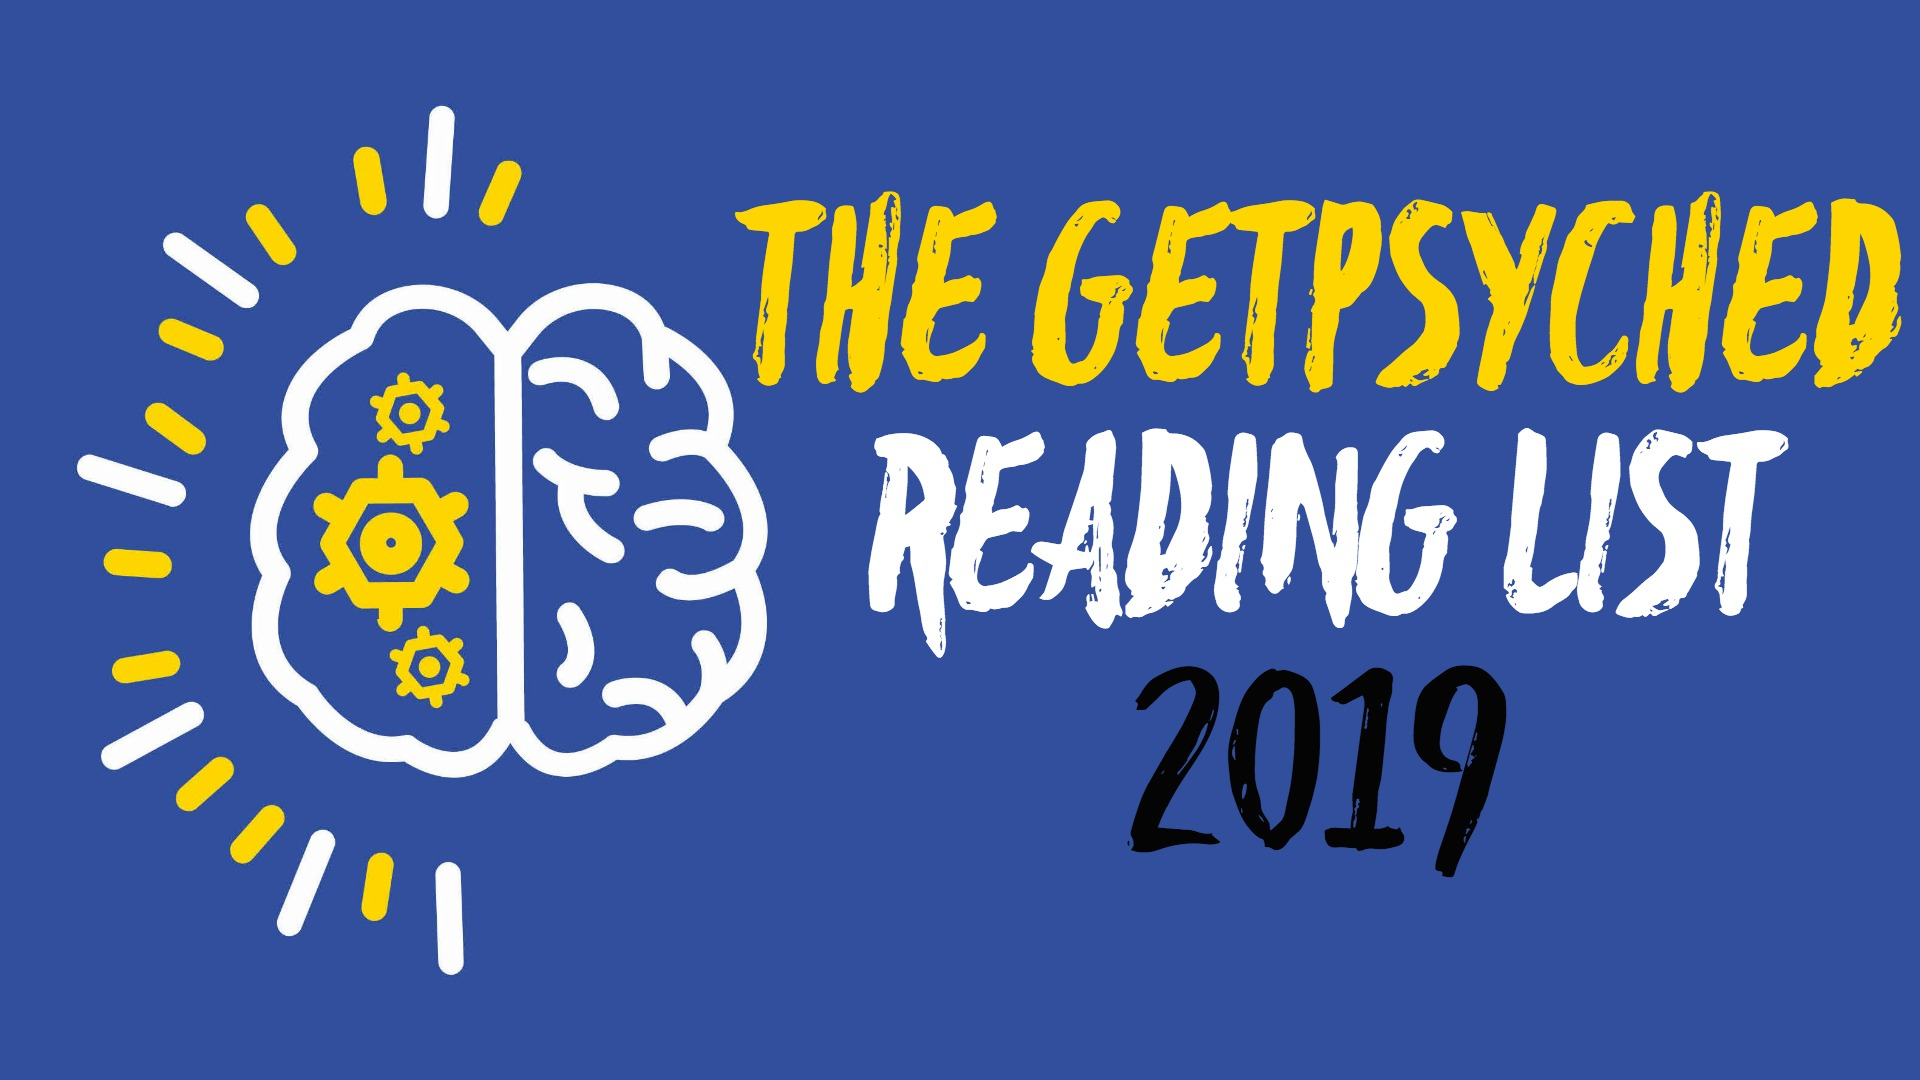 The GetPsyched Reading List 2019